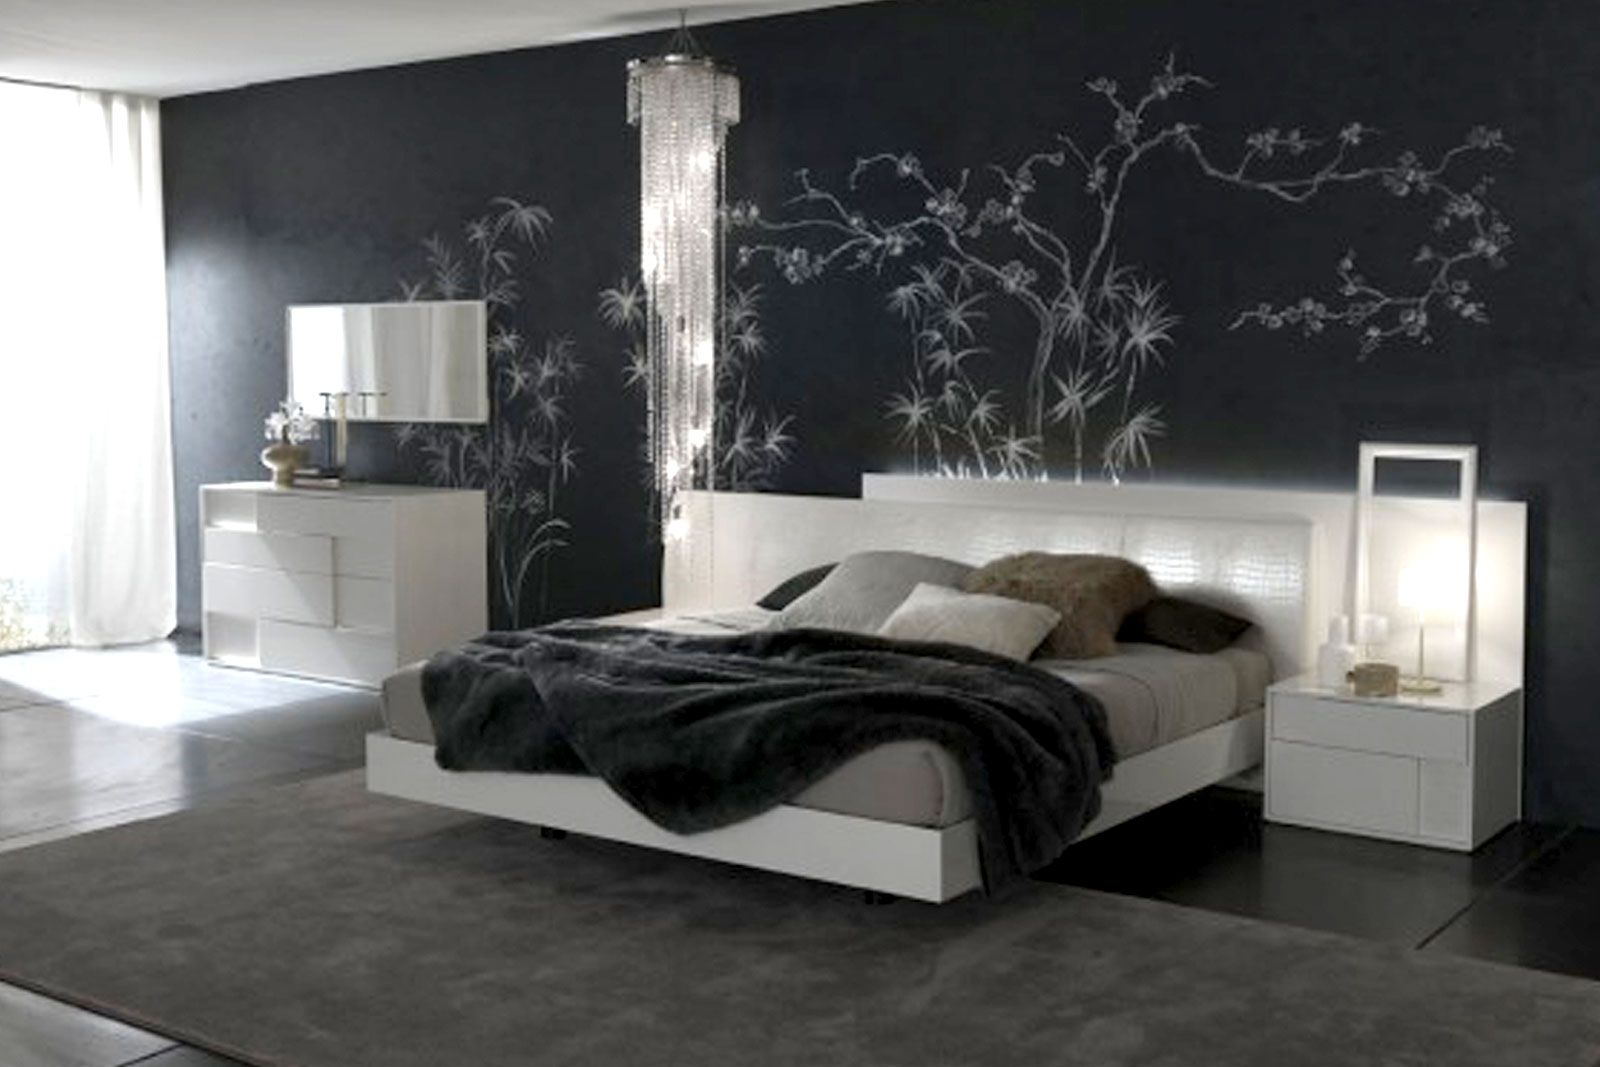 Interior design center inspiration - Deco chambre lit noir ...